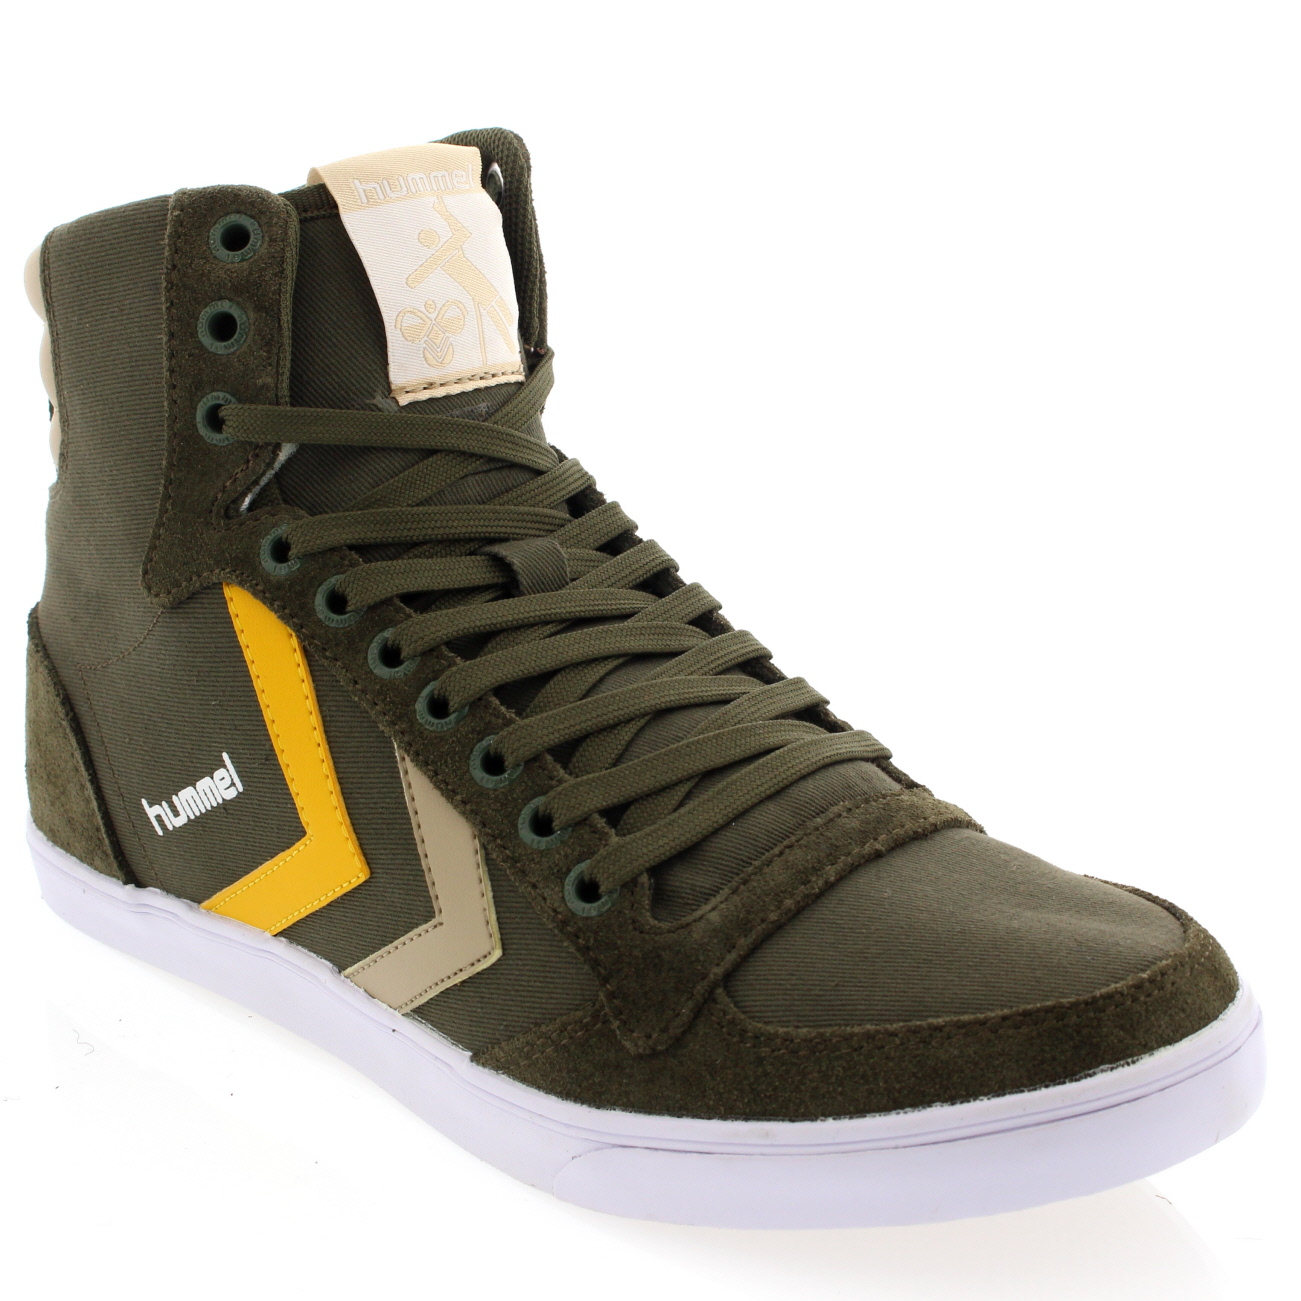 Hummel Slimmer Stadil High Top